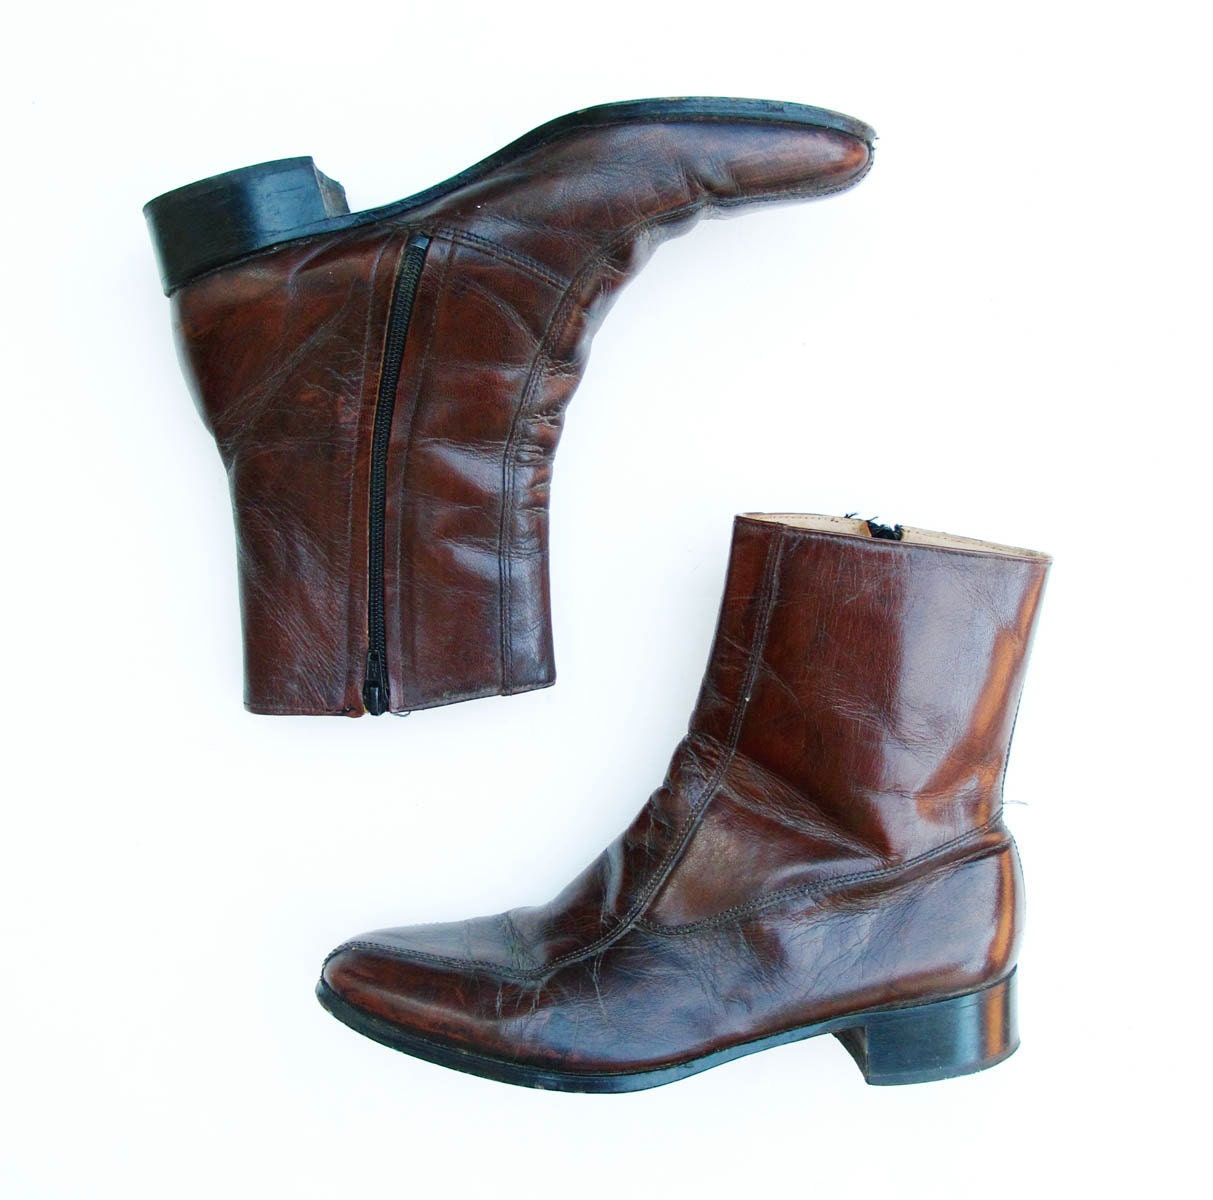 70s vintage boots mens 9 d leather ankle boot mod